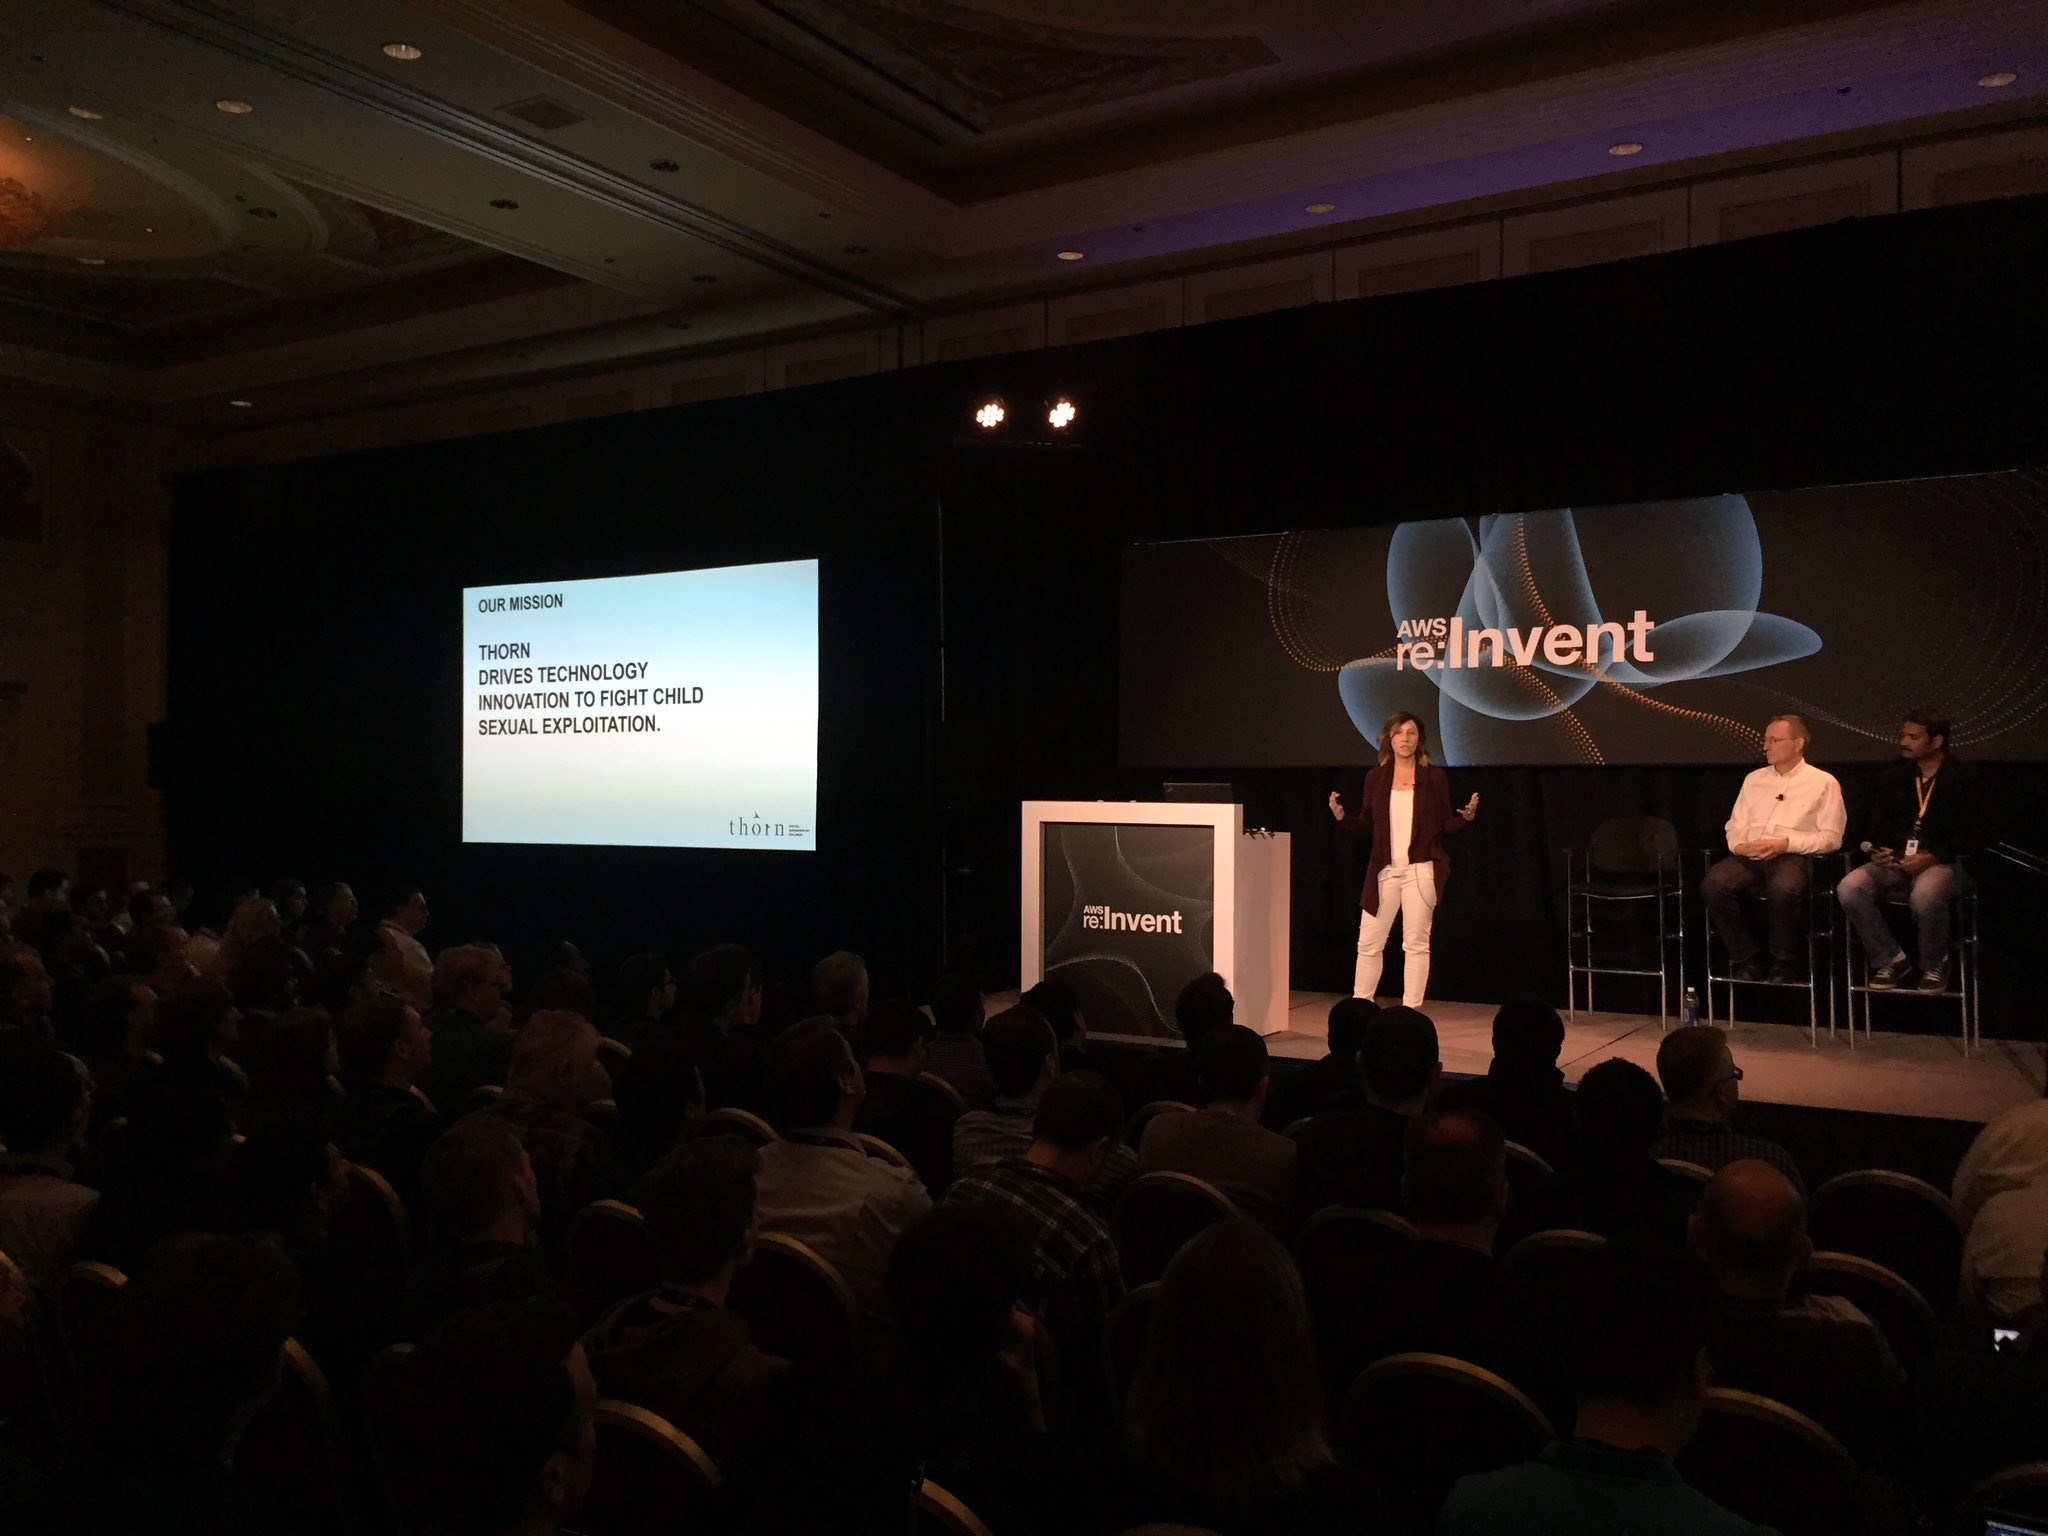 """AWS re:Invent on Twitter: """"Kristin Boorse sharing how @thorn ..."""